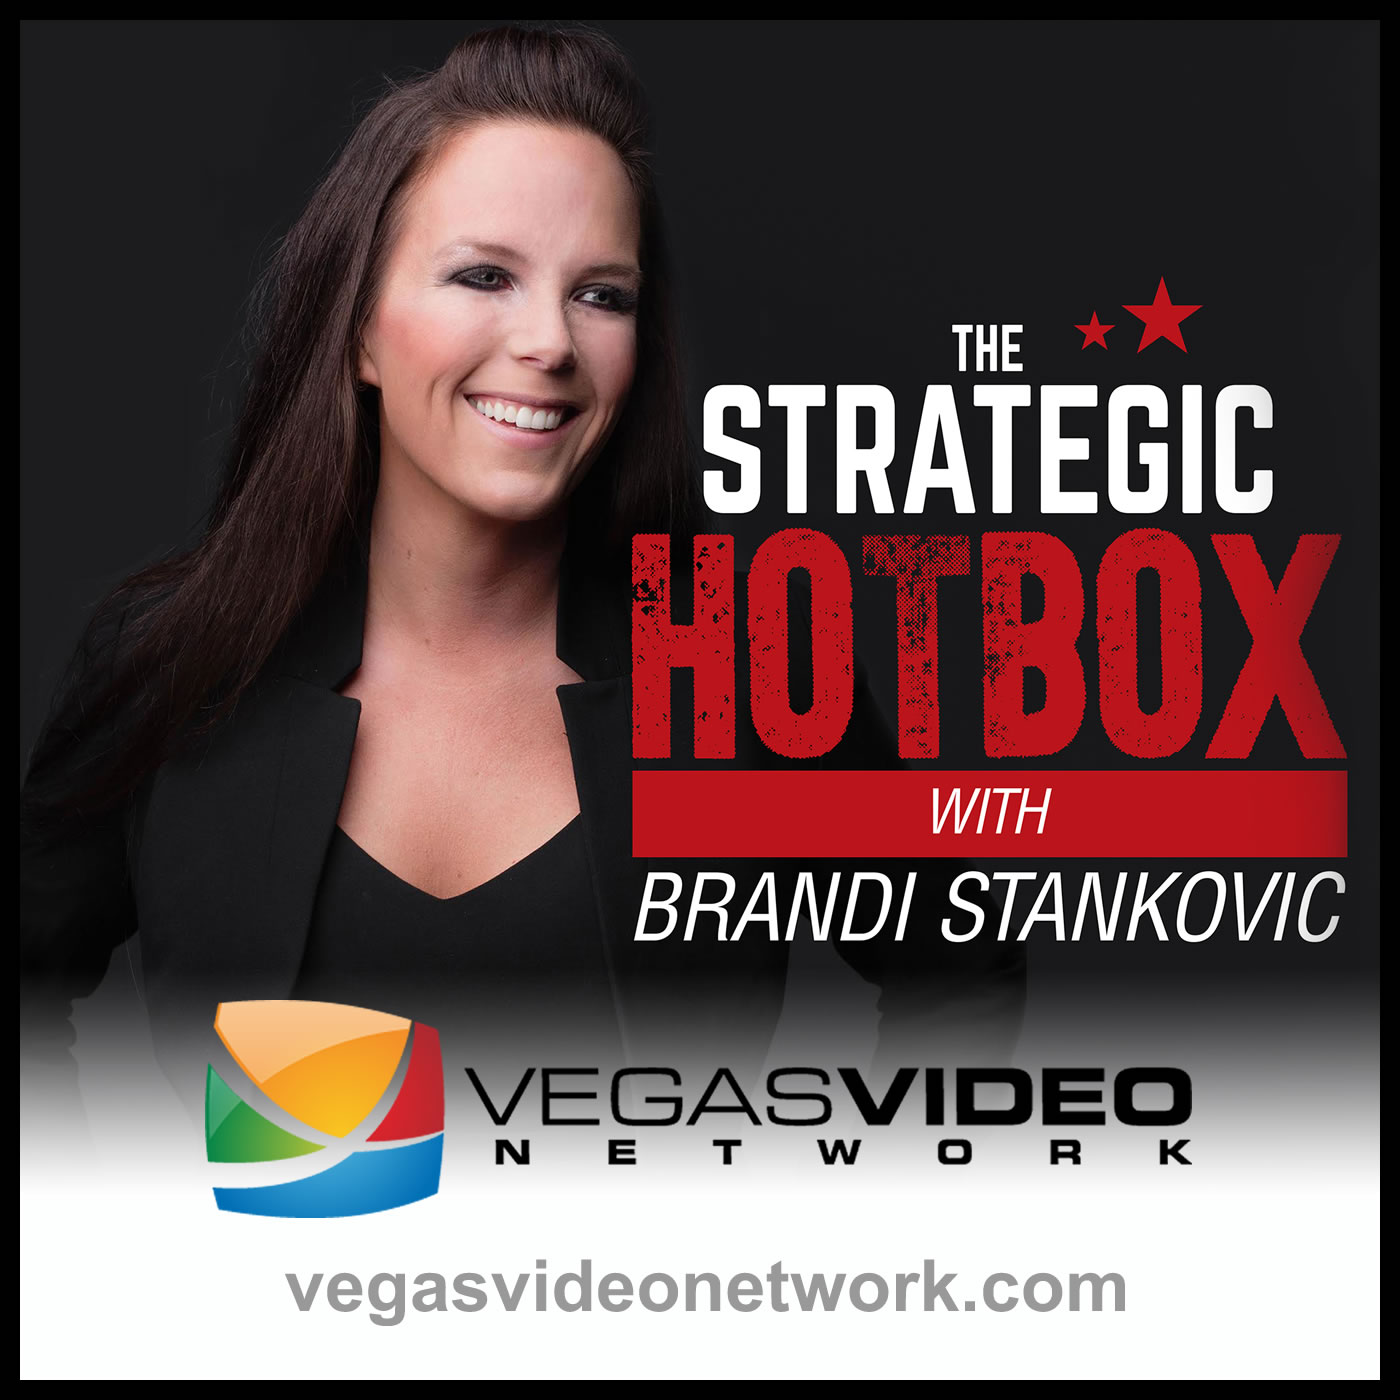 The Strategic Hotbox